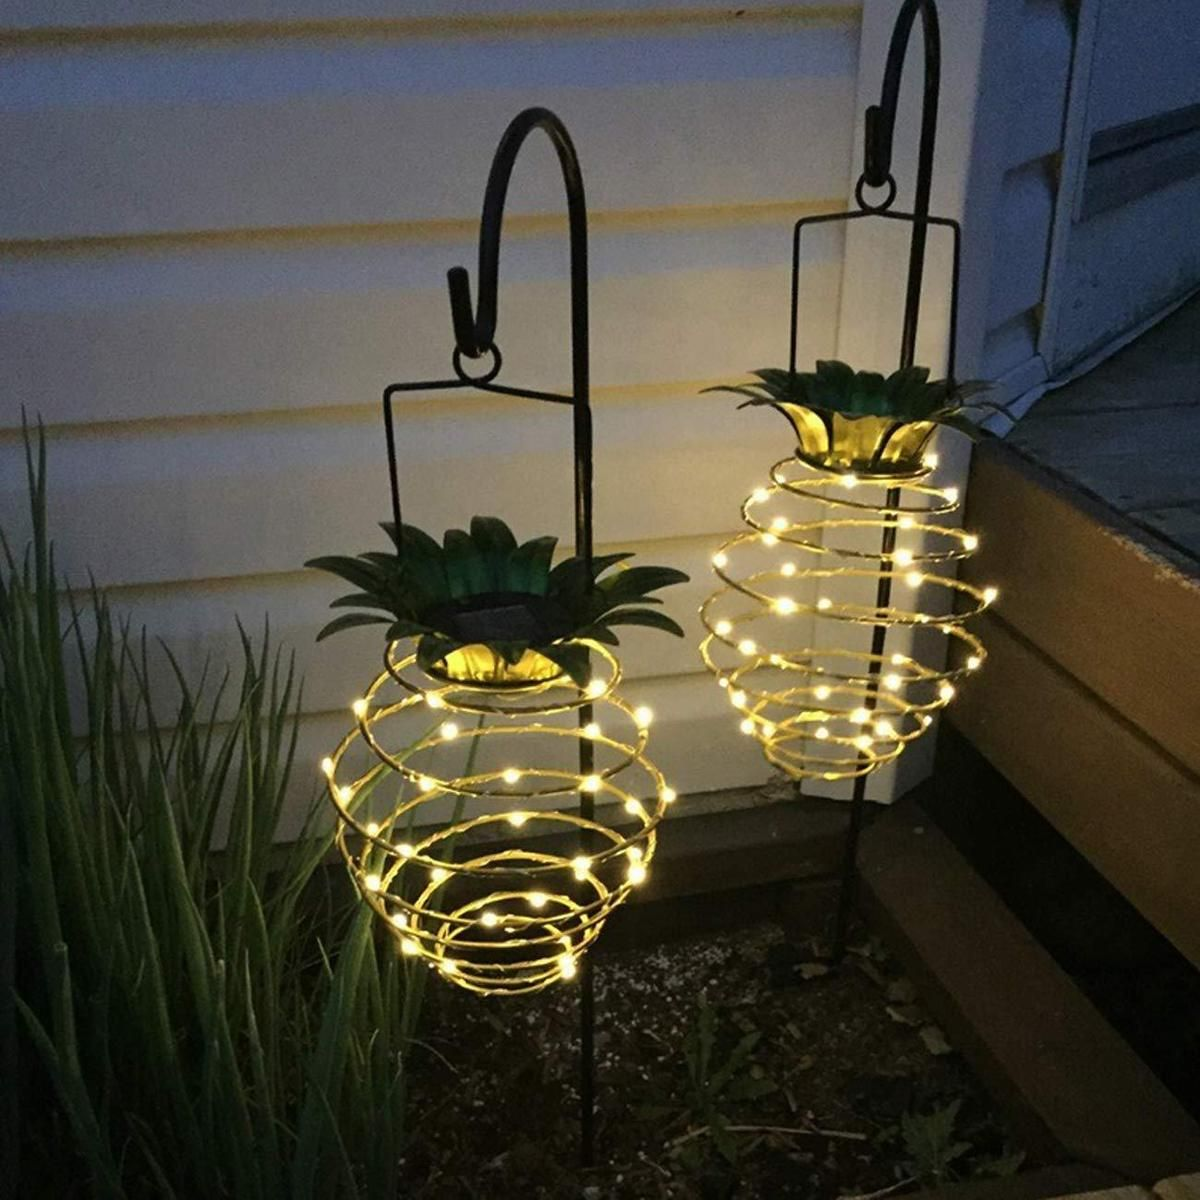 Solar Pineapple Lantern Solar Lights Garden Pineapple Lights Hanging Solar Lights